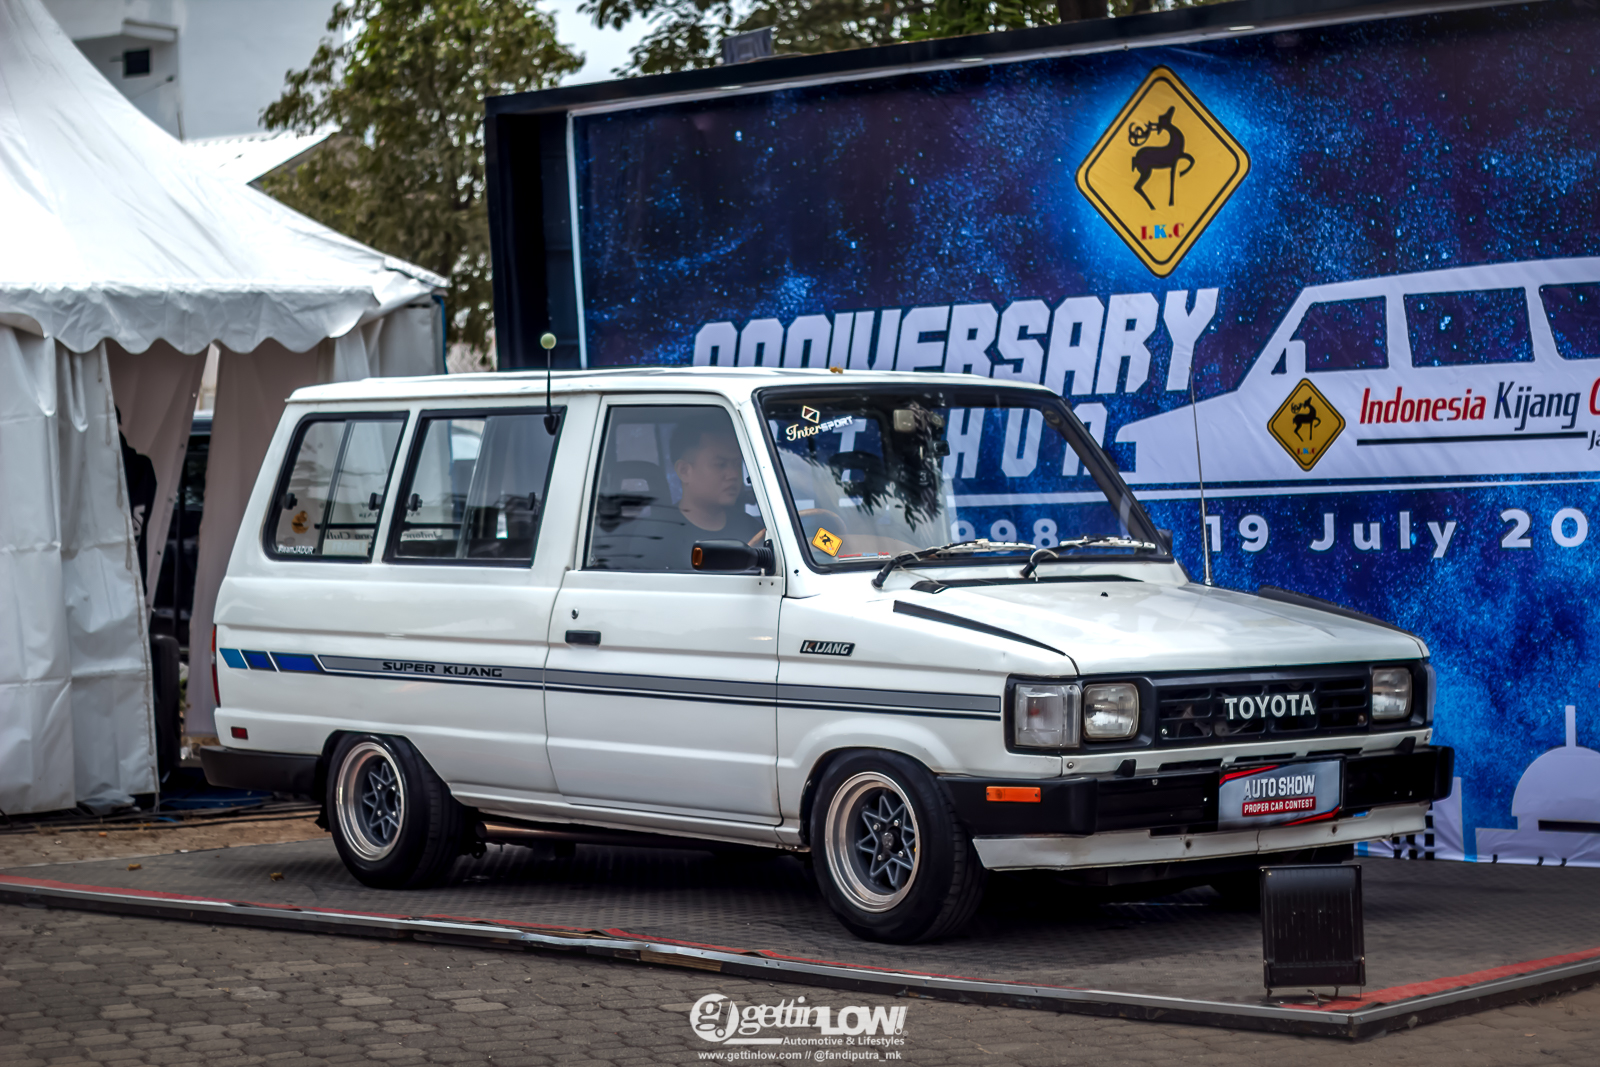 intersport autoshow proper car contest 2018 Bekasi